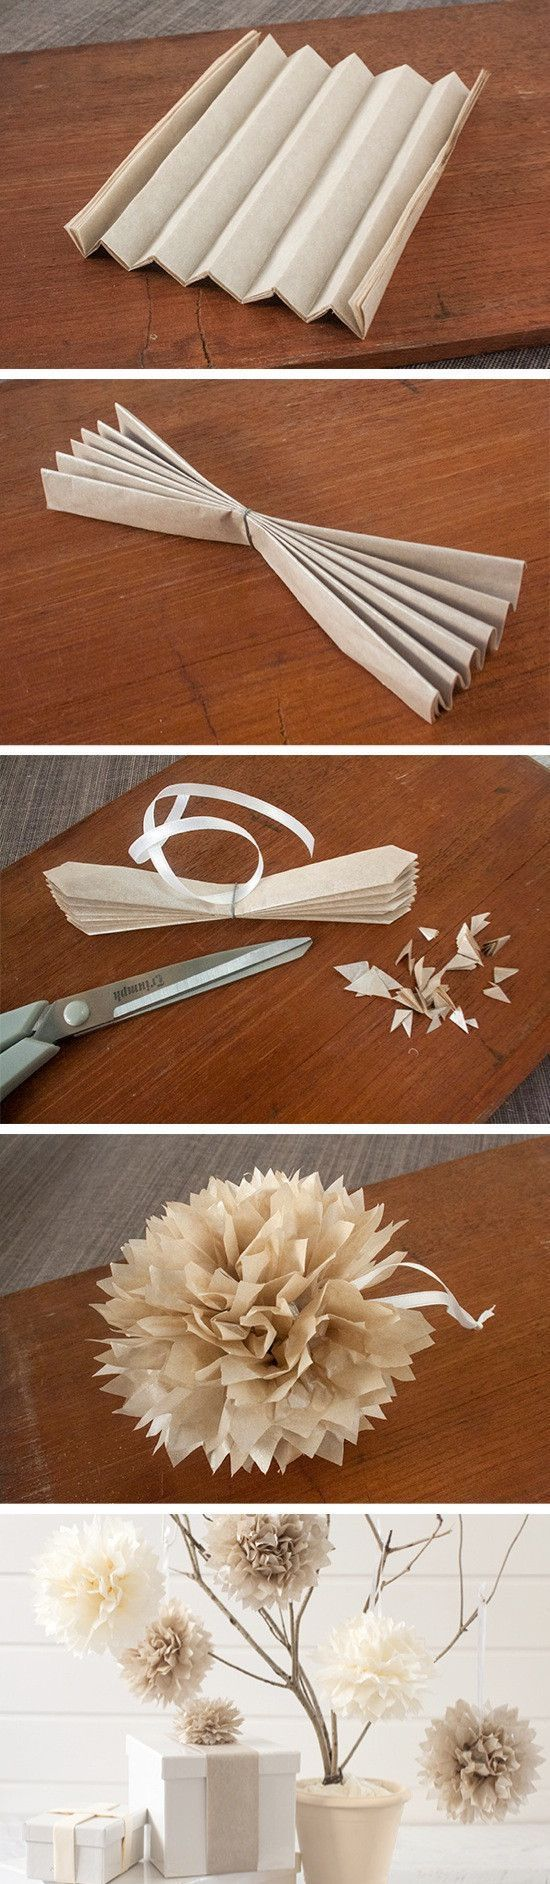 8 Different Ways To Make Paper Flowers Diy Creative Ideas Paper